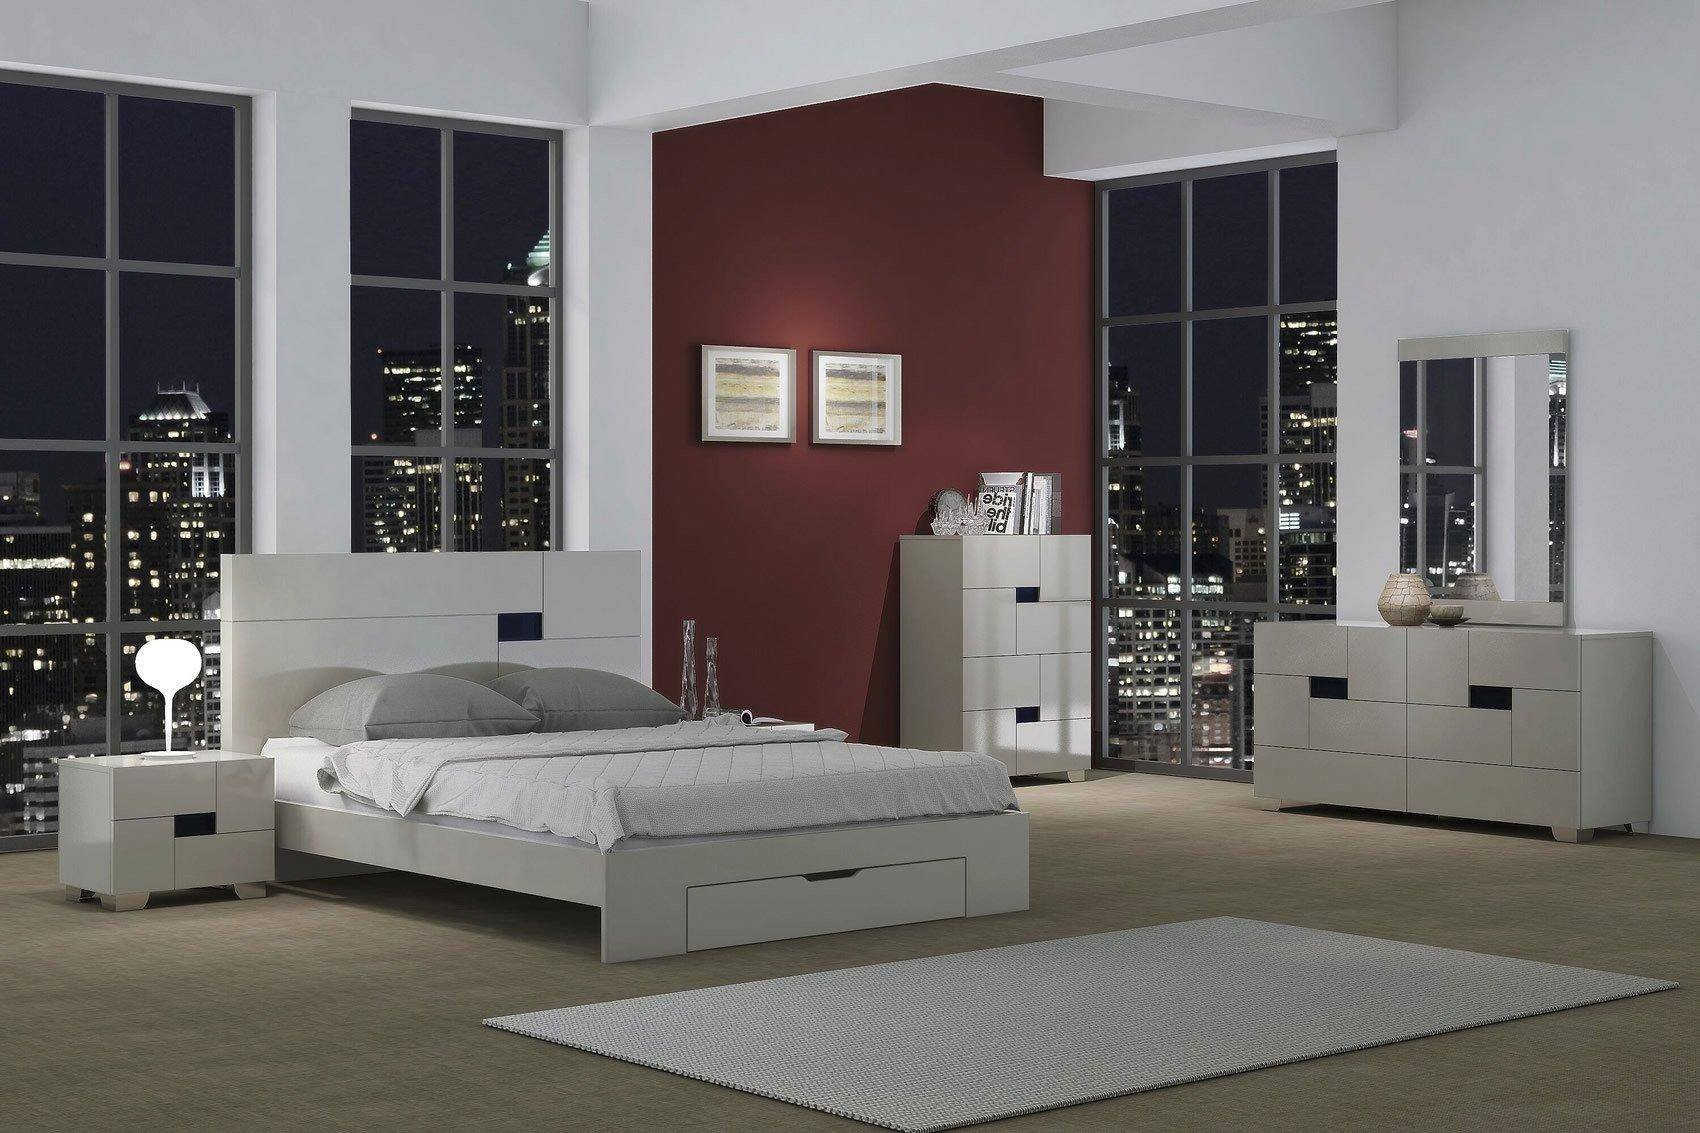 Queen Size Bedroom Set New Contemporary Light Gray Lacquer Storage Queen Bedroom Set